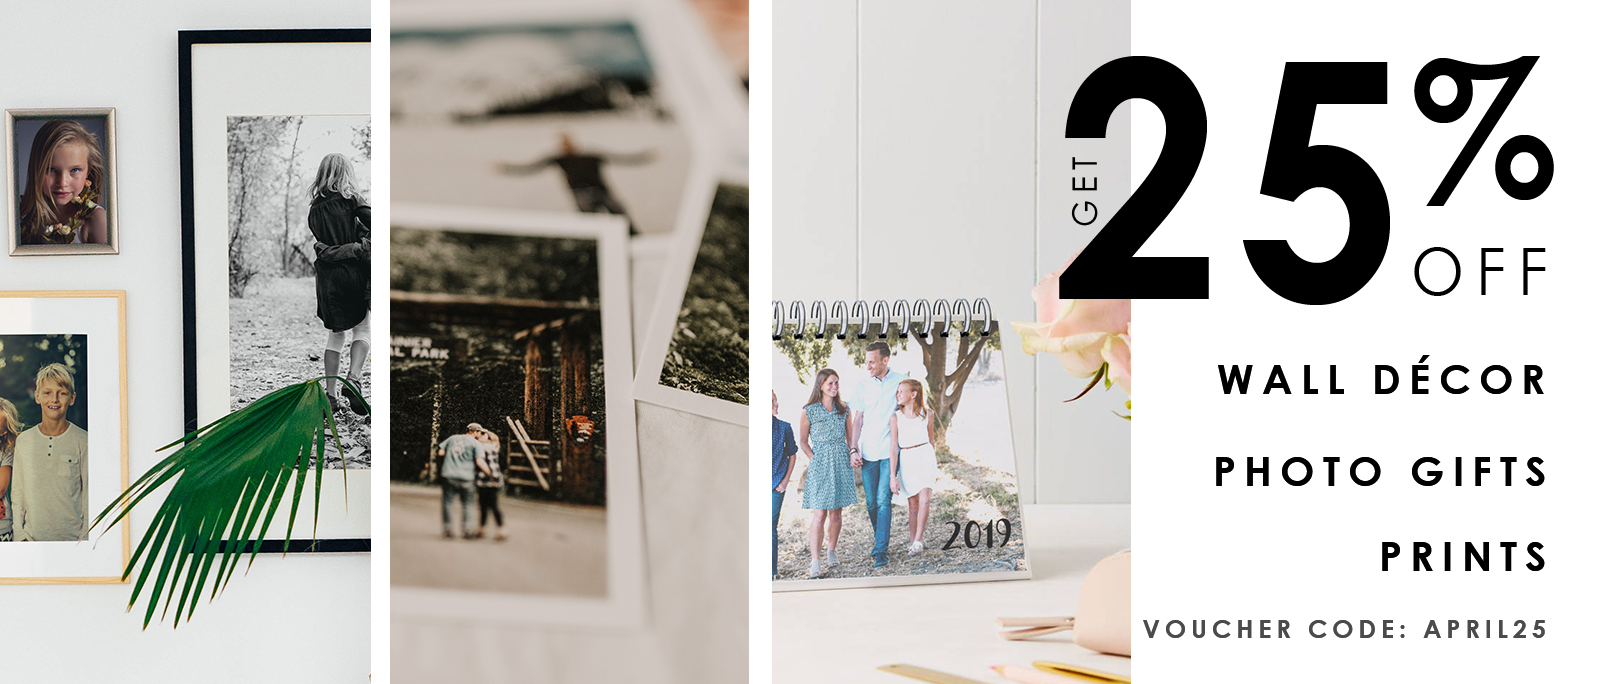 25% Off Wall Decor, Photo Gifts and Prints